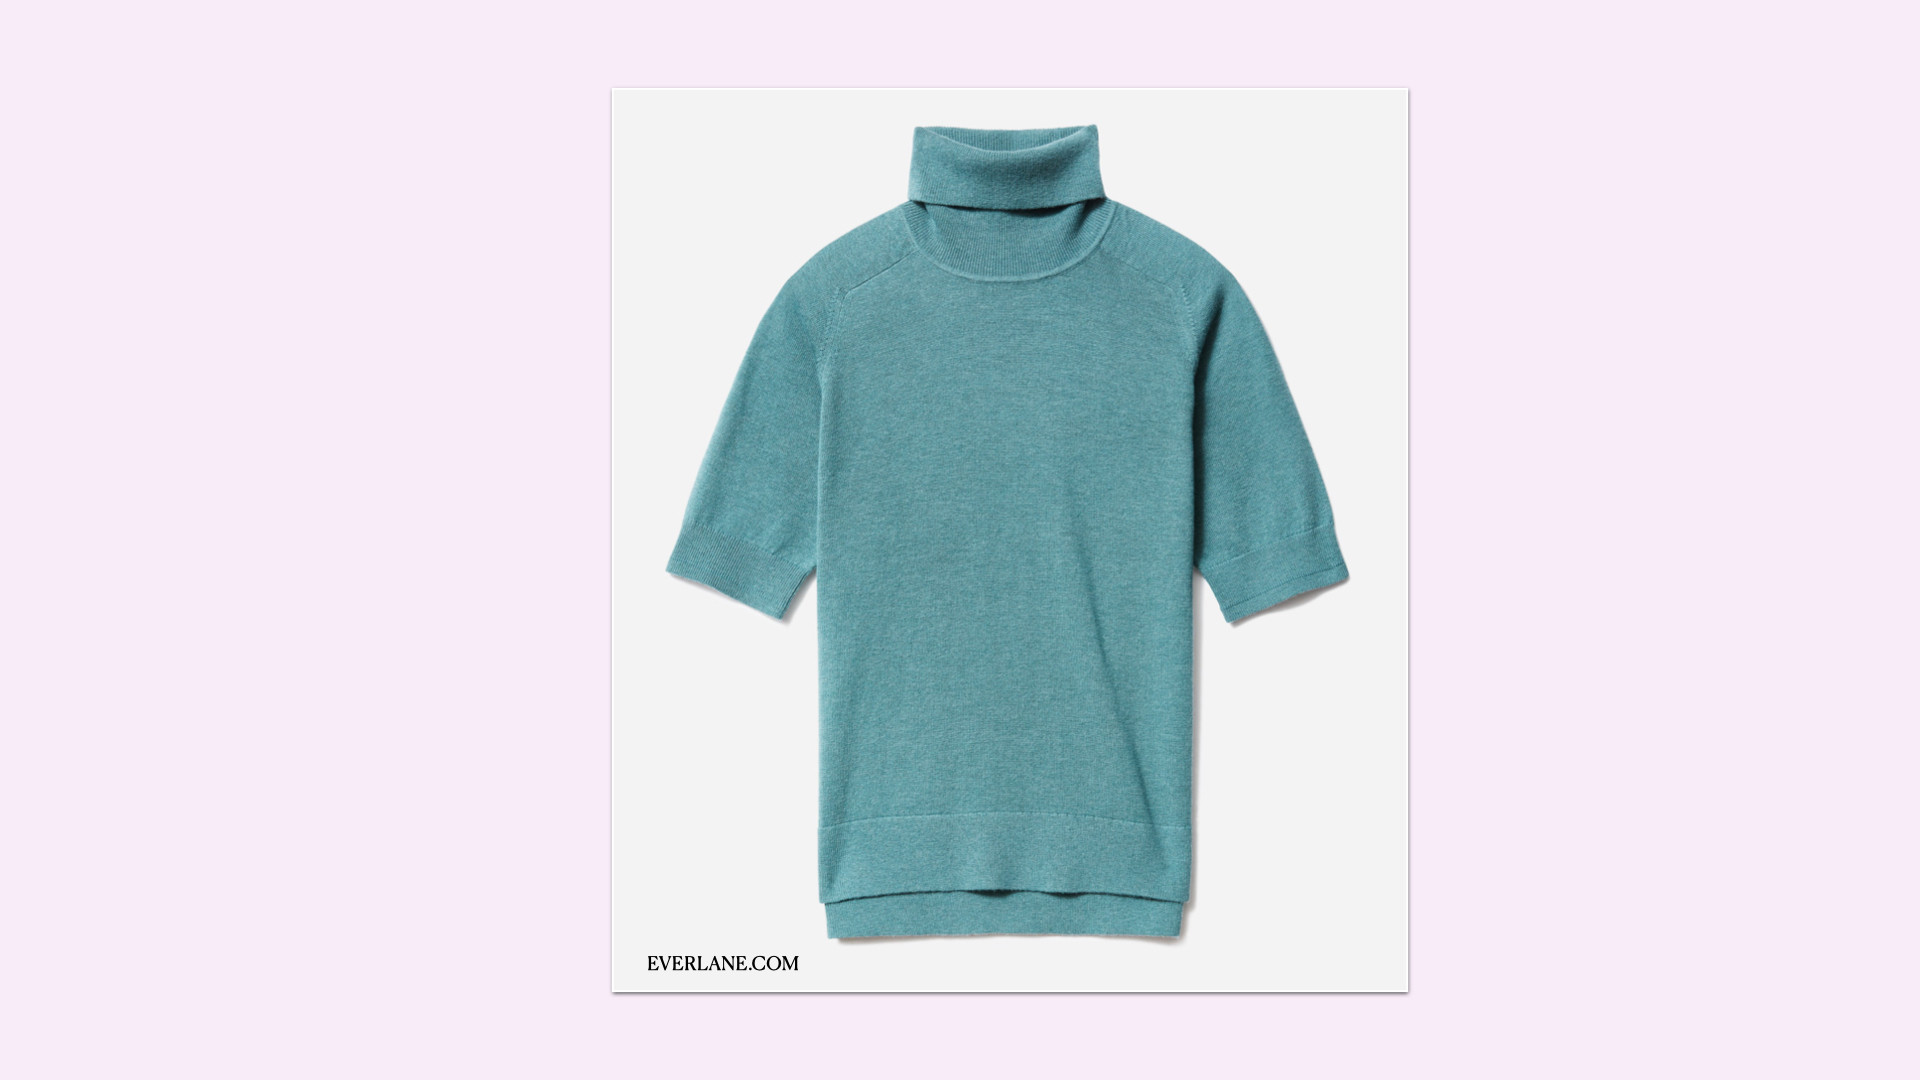 The Cotton–Merino Turtleneck Tee